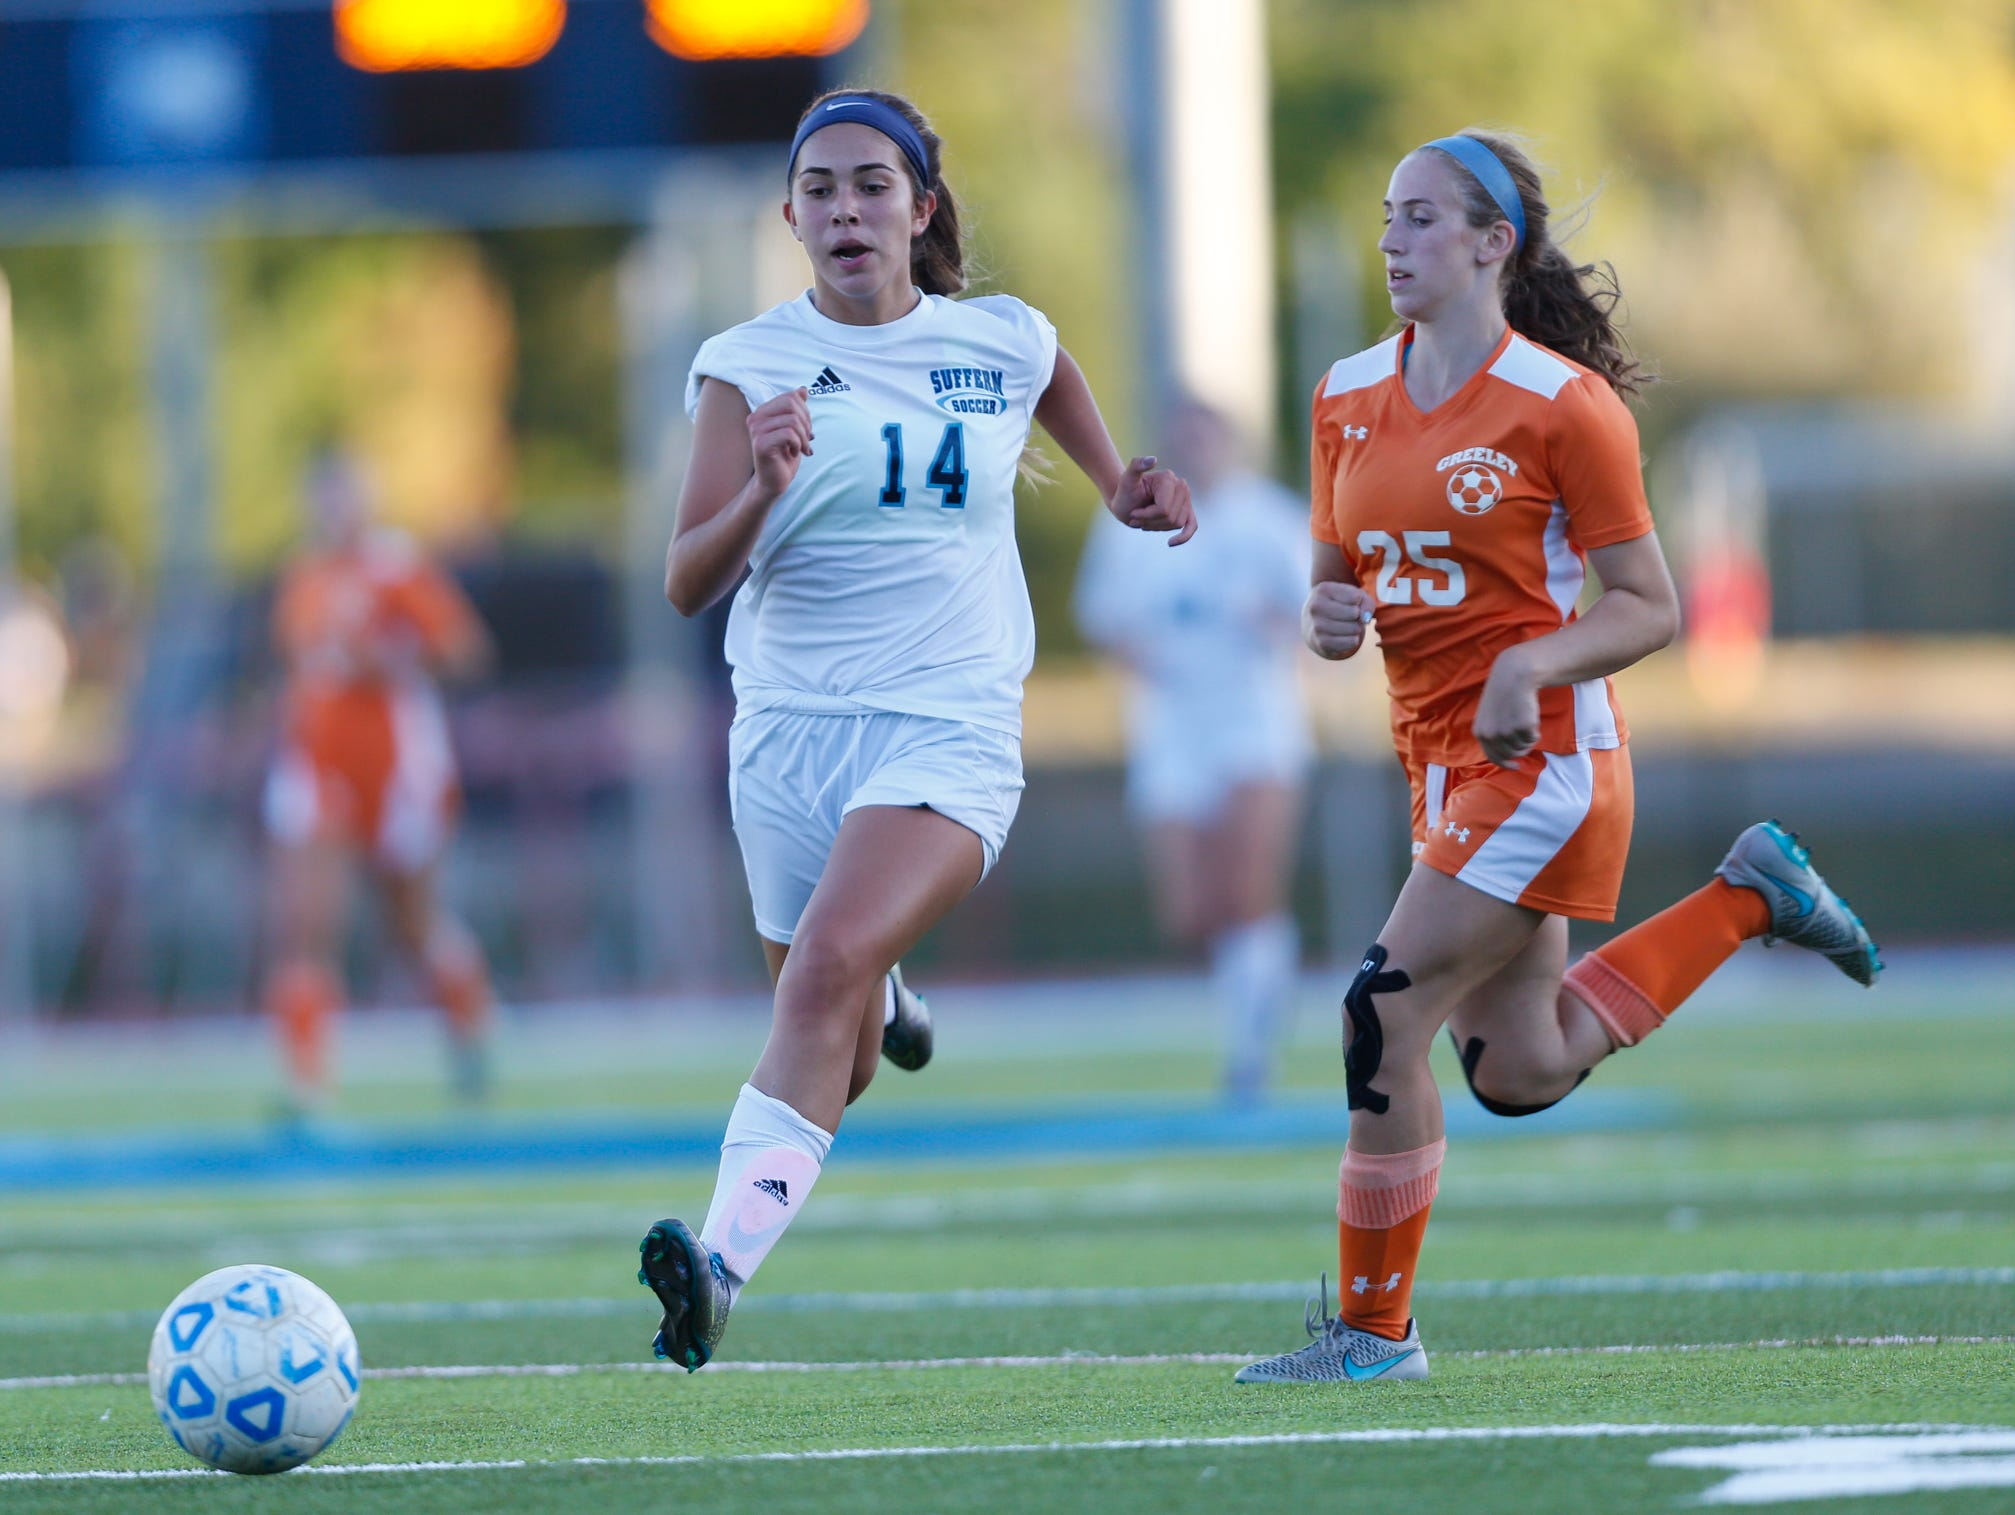 Tatiana Cruz (14) works the ball during their game against Horace Greeley at Suffern Middle School on Thursday, September 15, 2016.